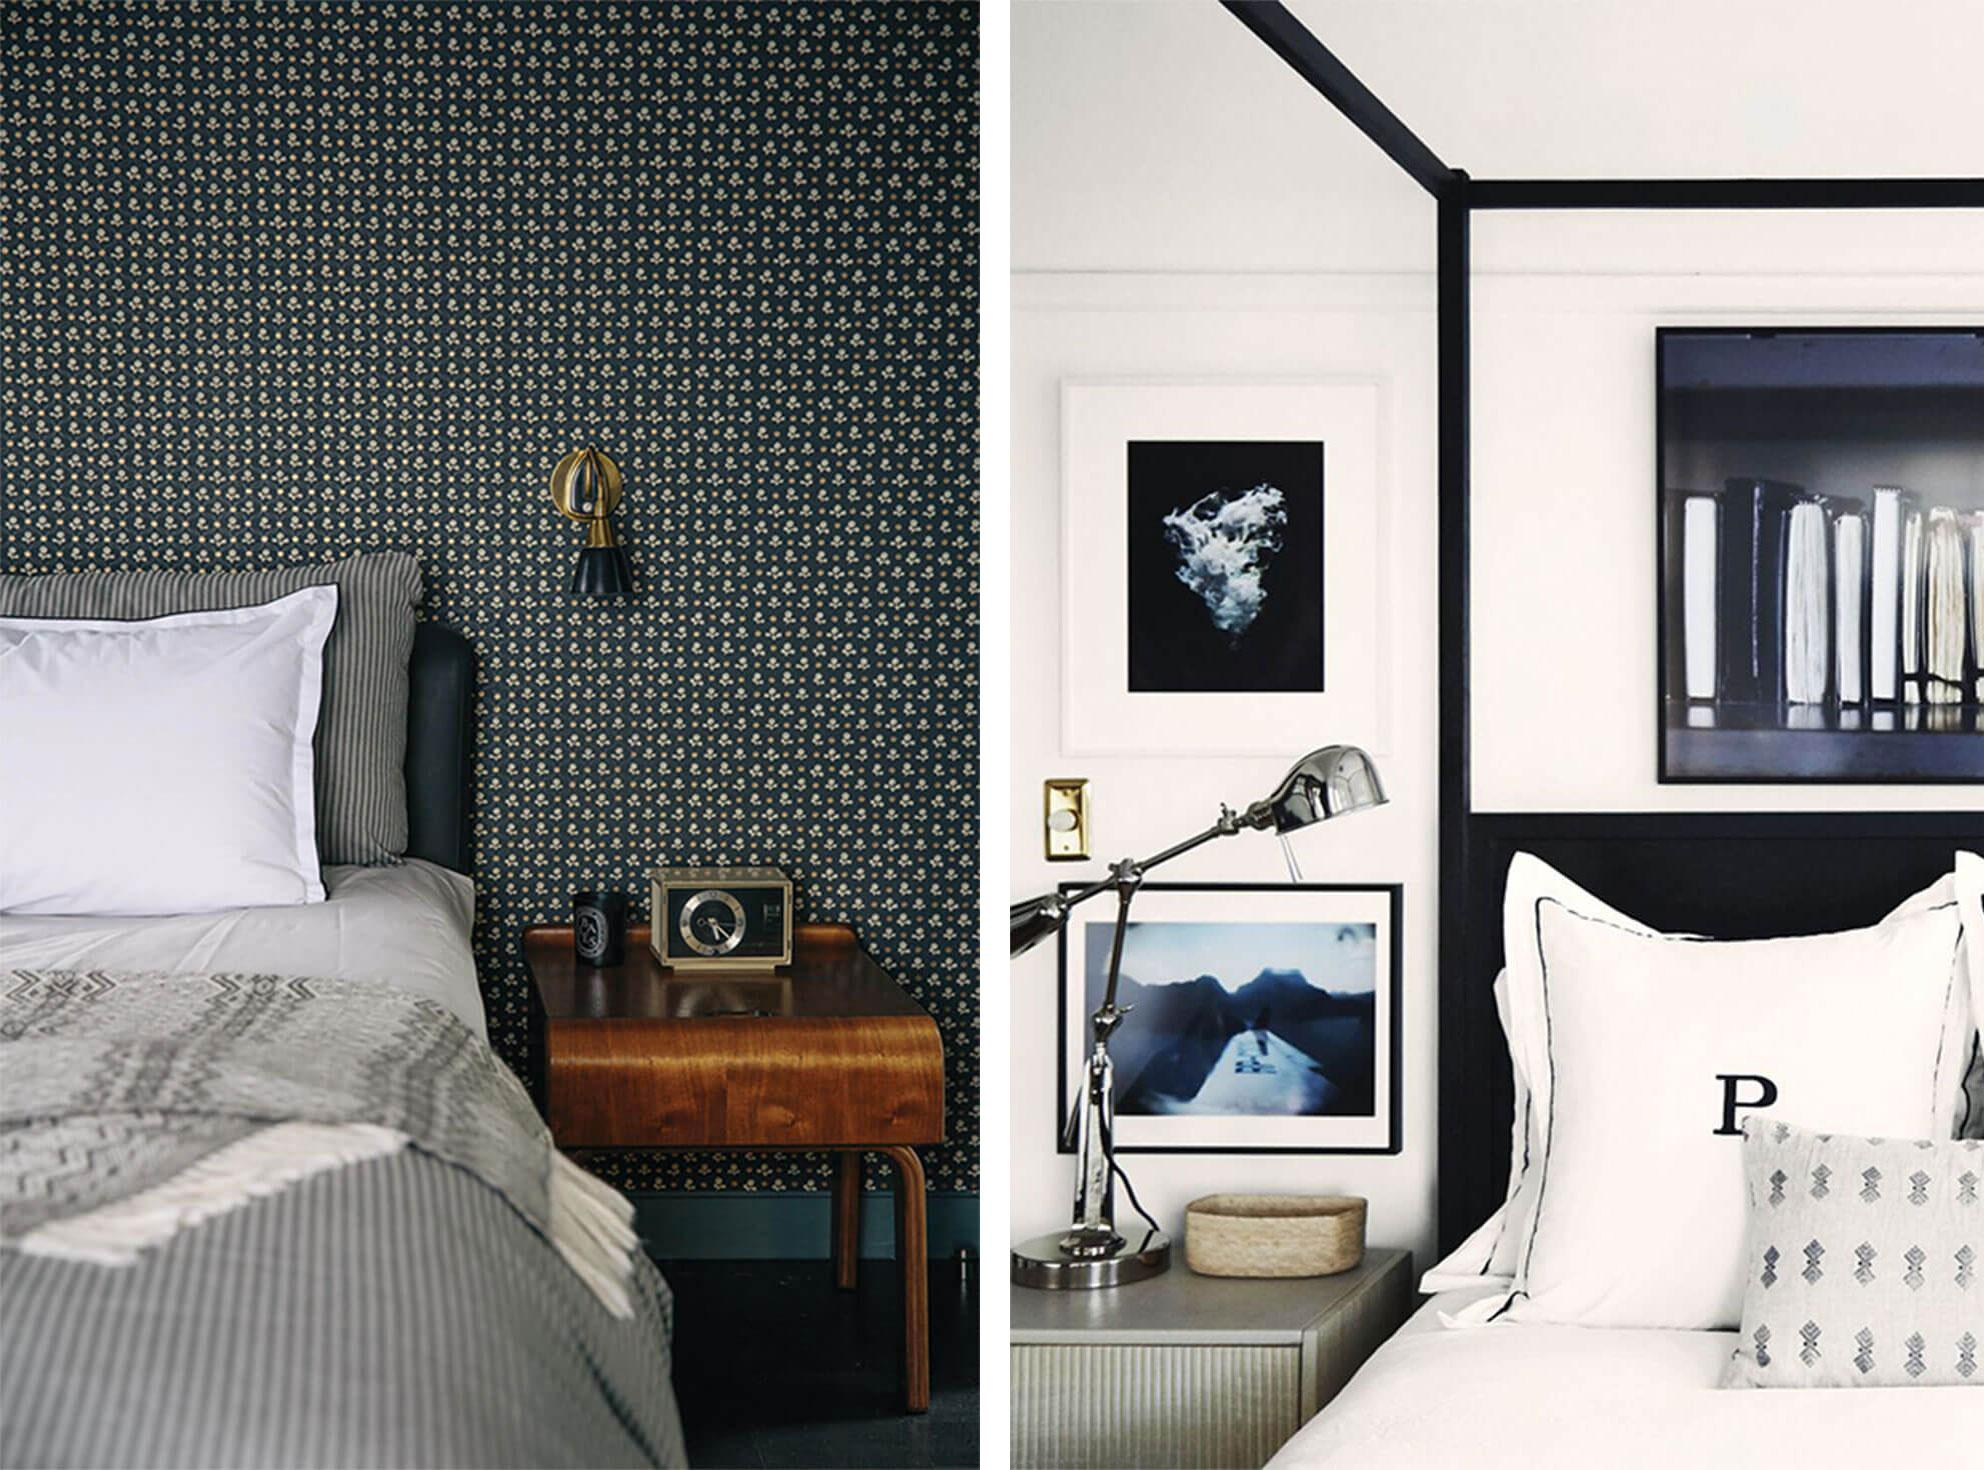 Modern bedroom with patterned wallpaper and metallic sconce